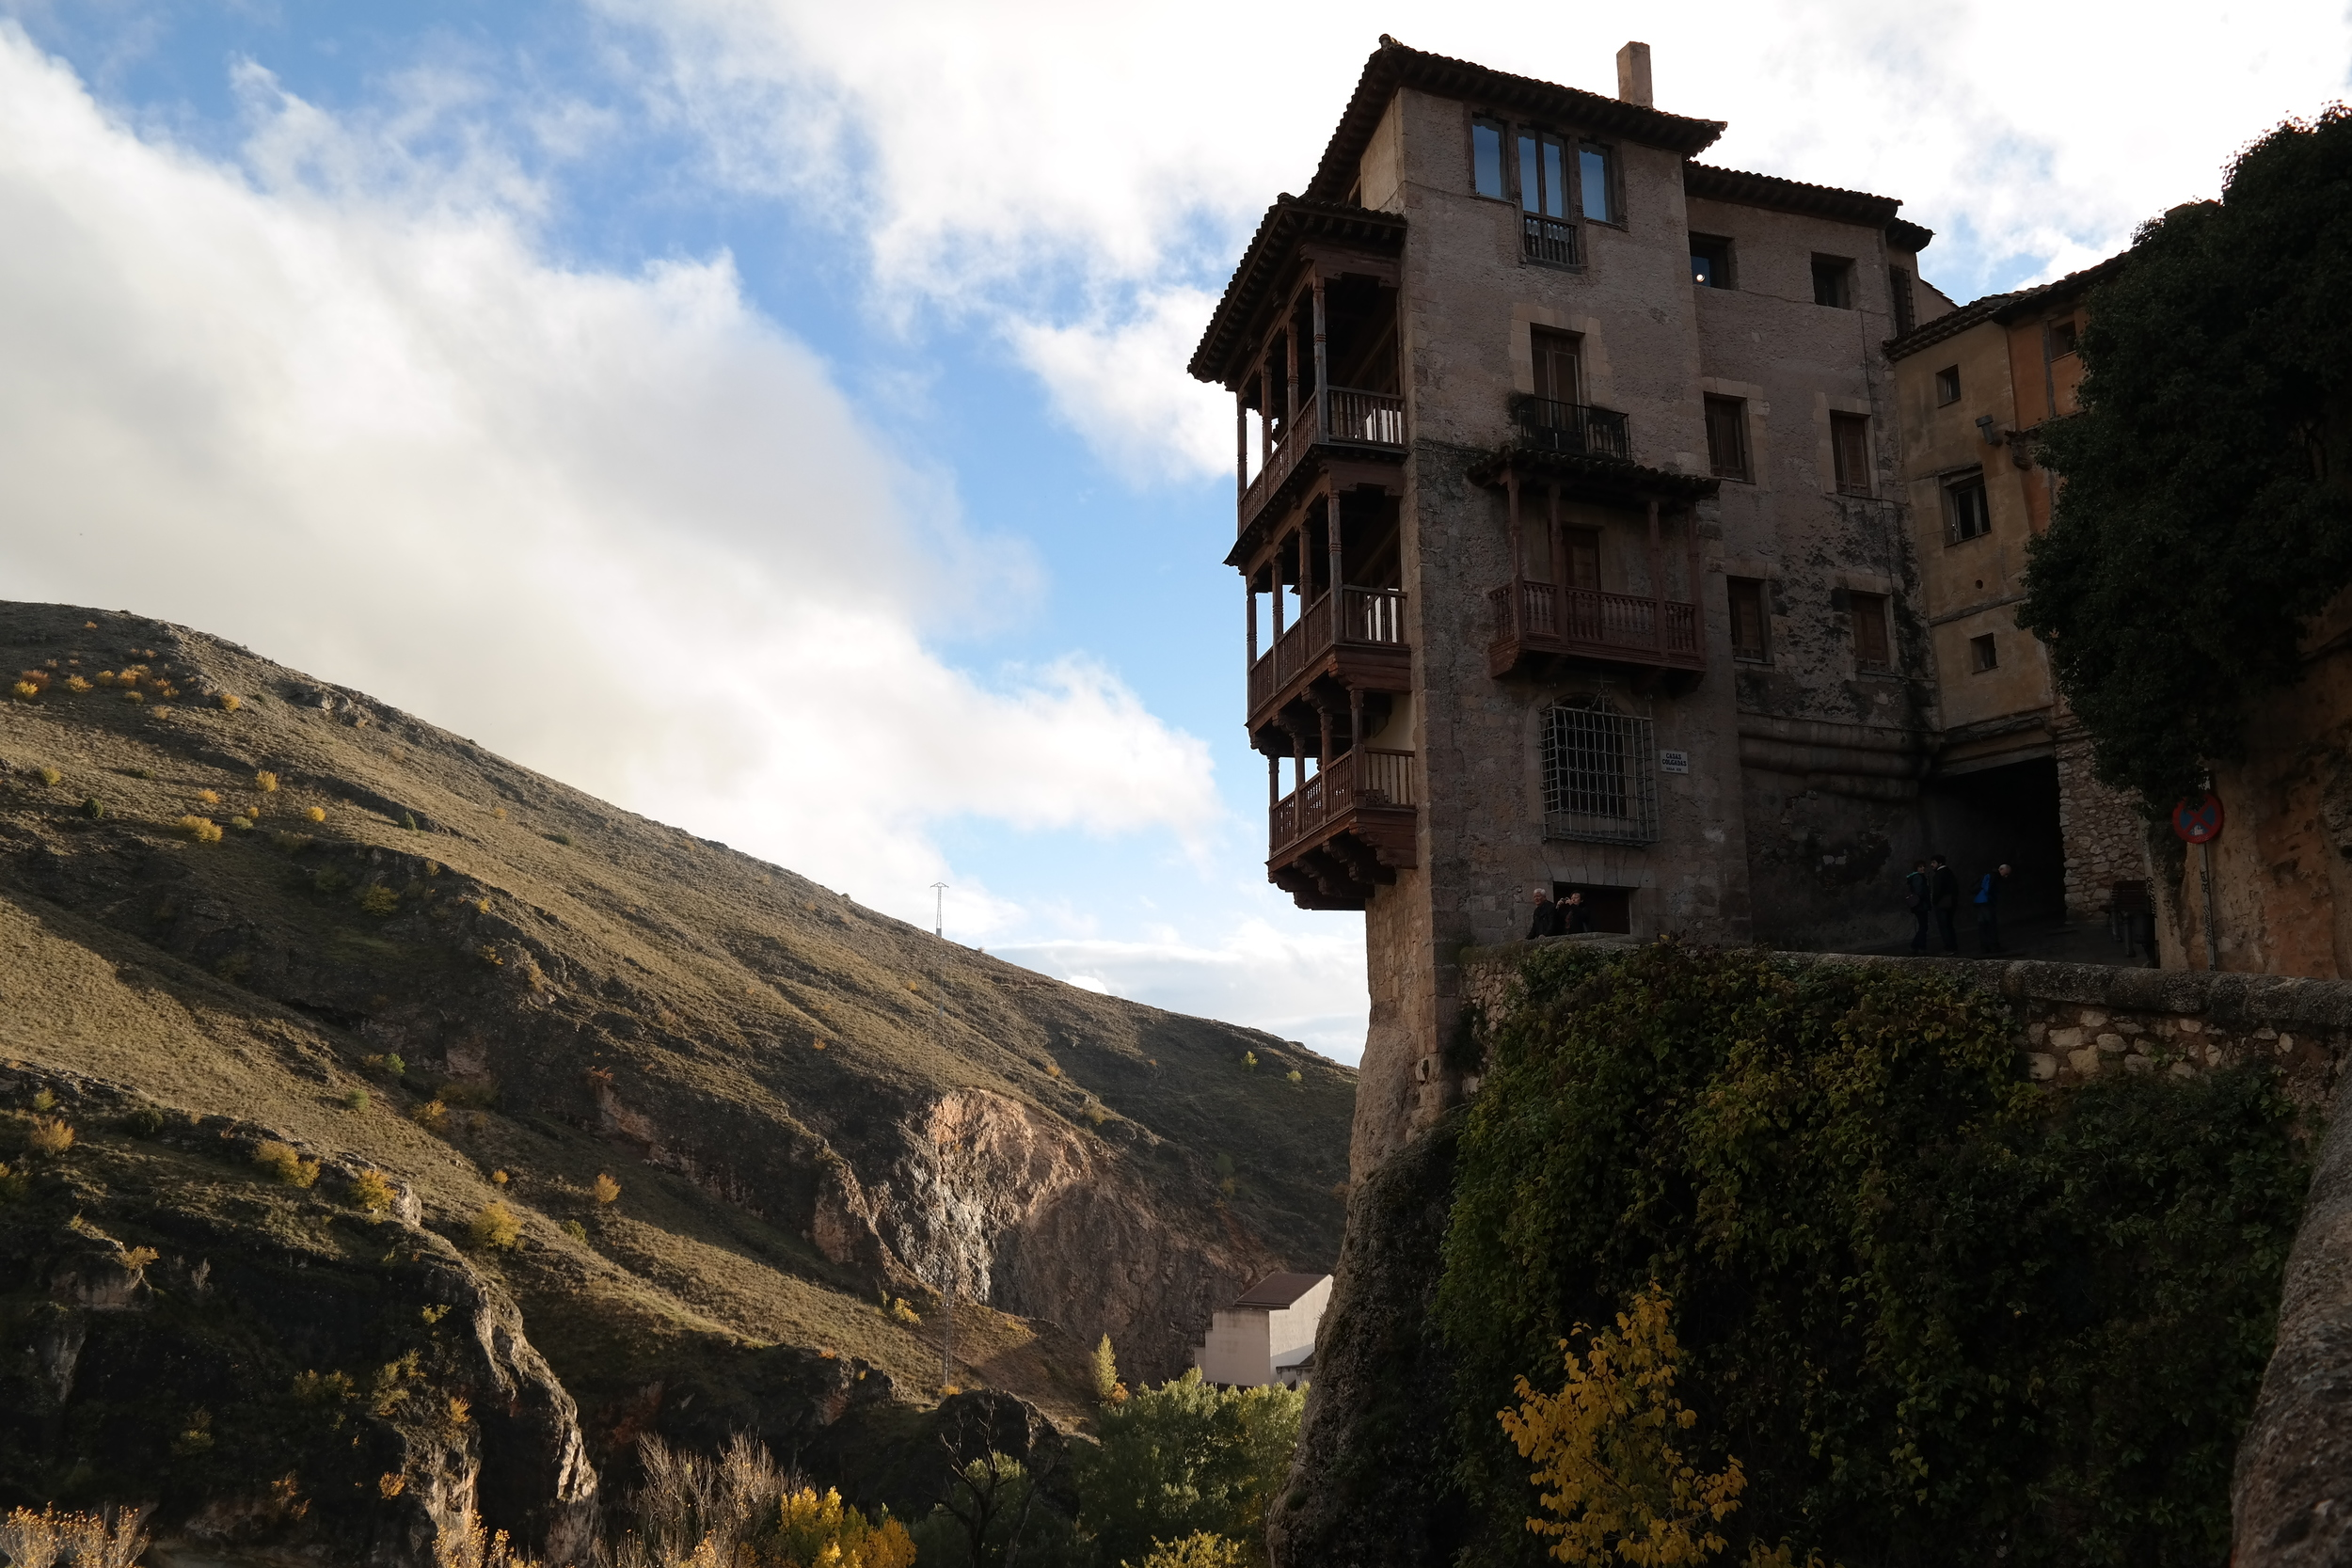 This is one of the famous Hanging Houses ( Casas Colgadas ) of Cuenca.